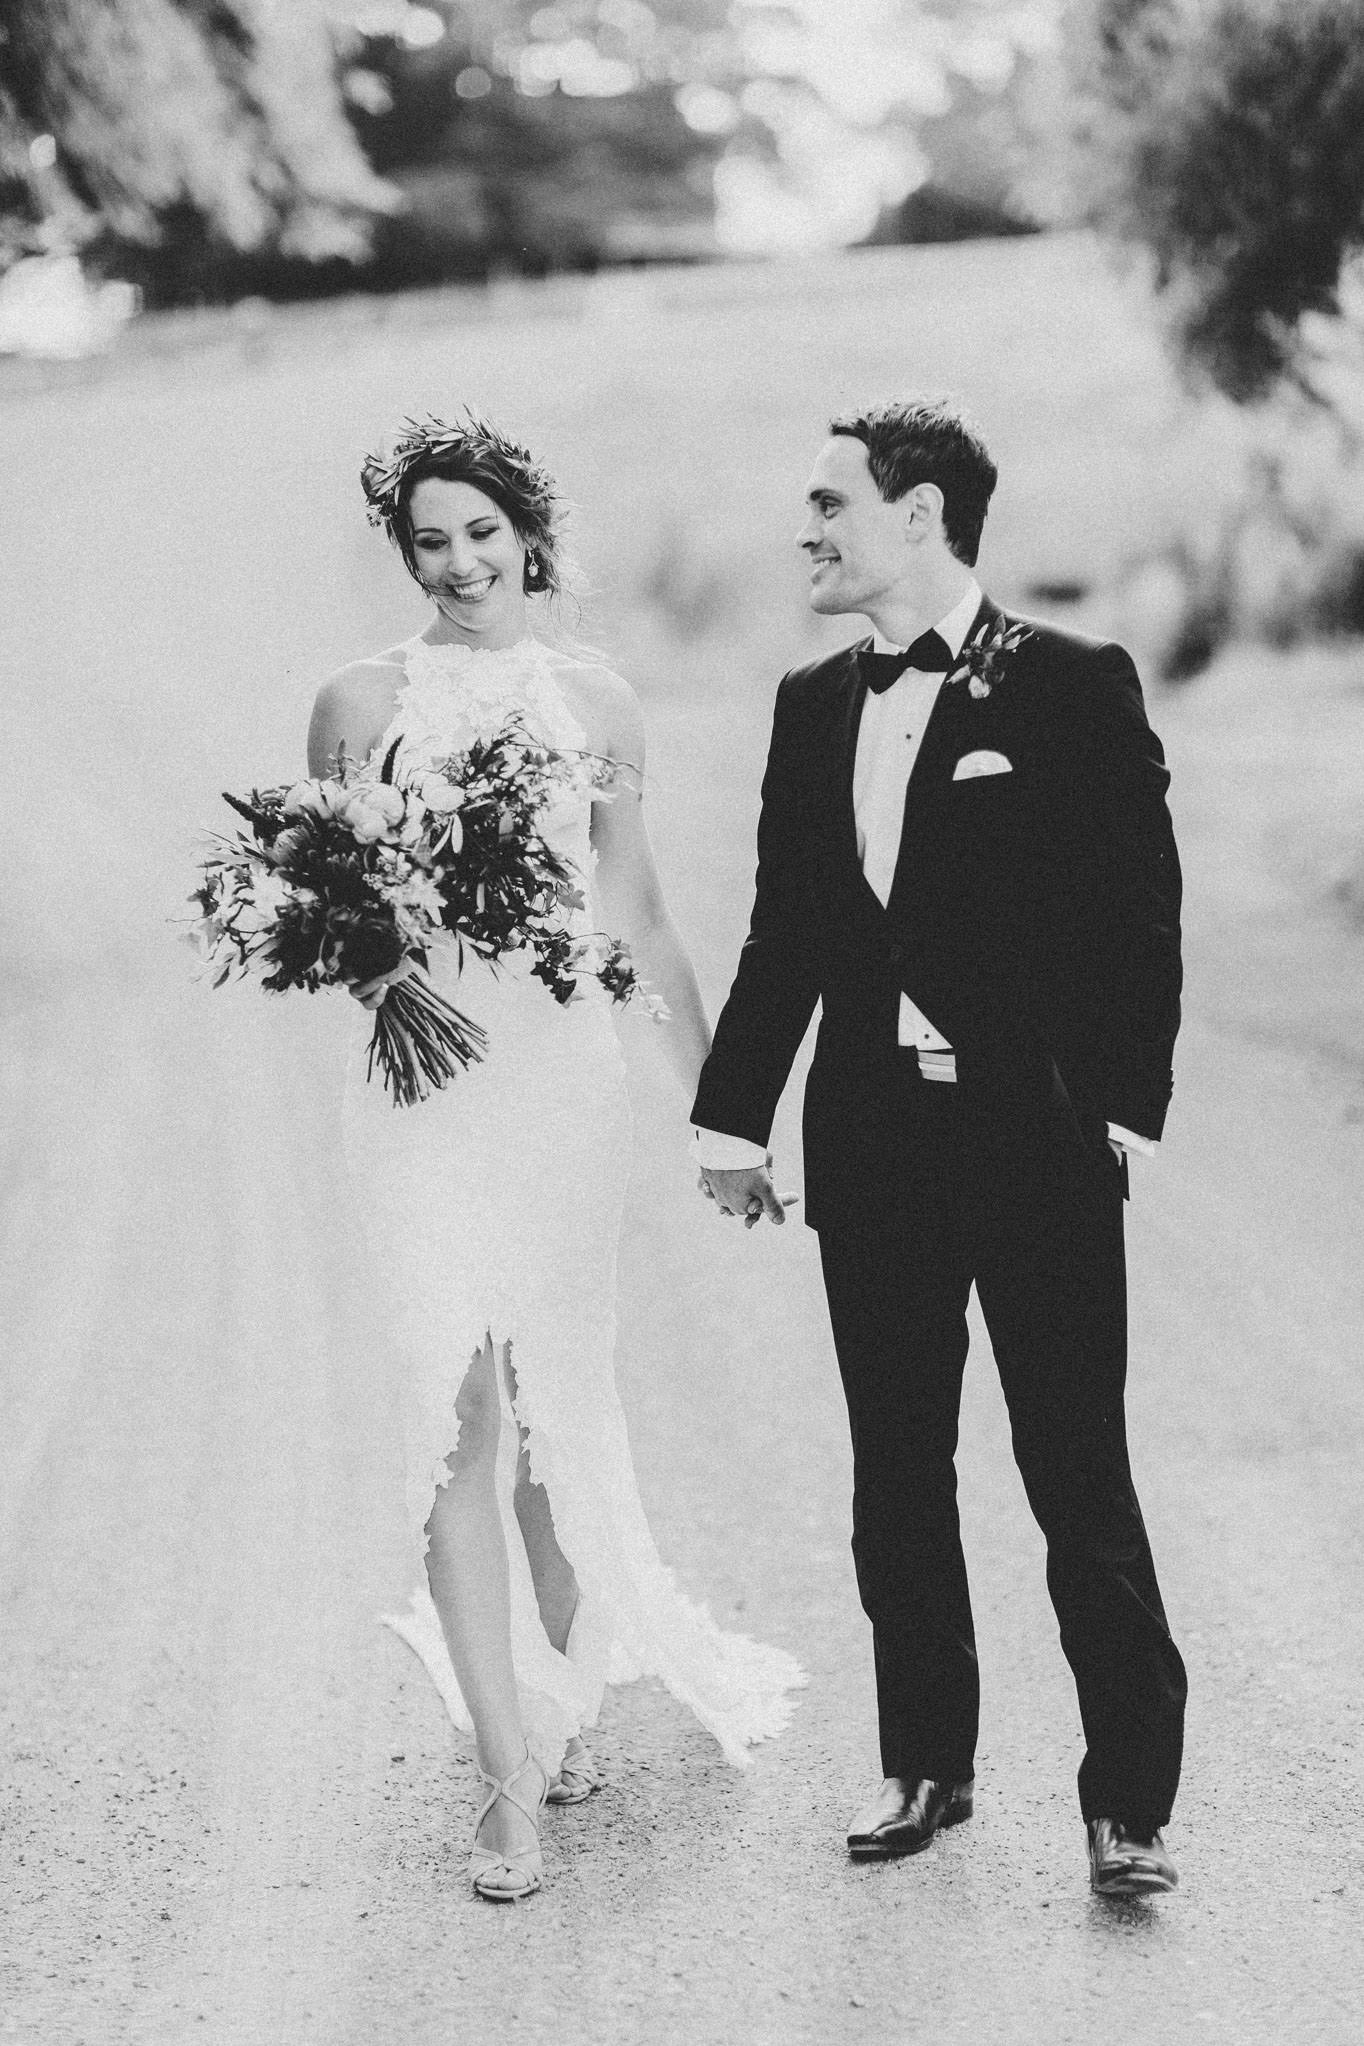 TocalHomestead_WeddingPhotography_LaurenAnnePhotography-1096.jpg